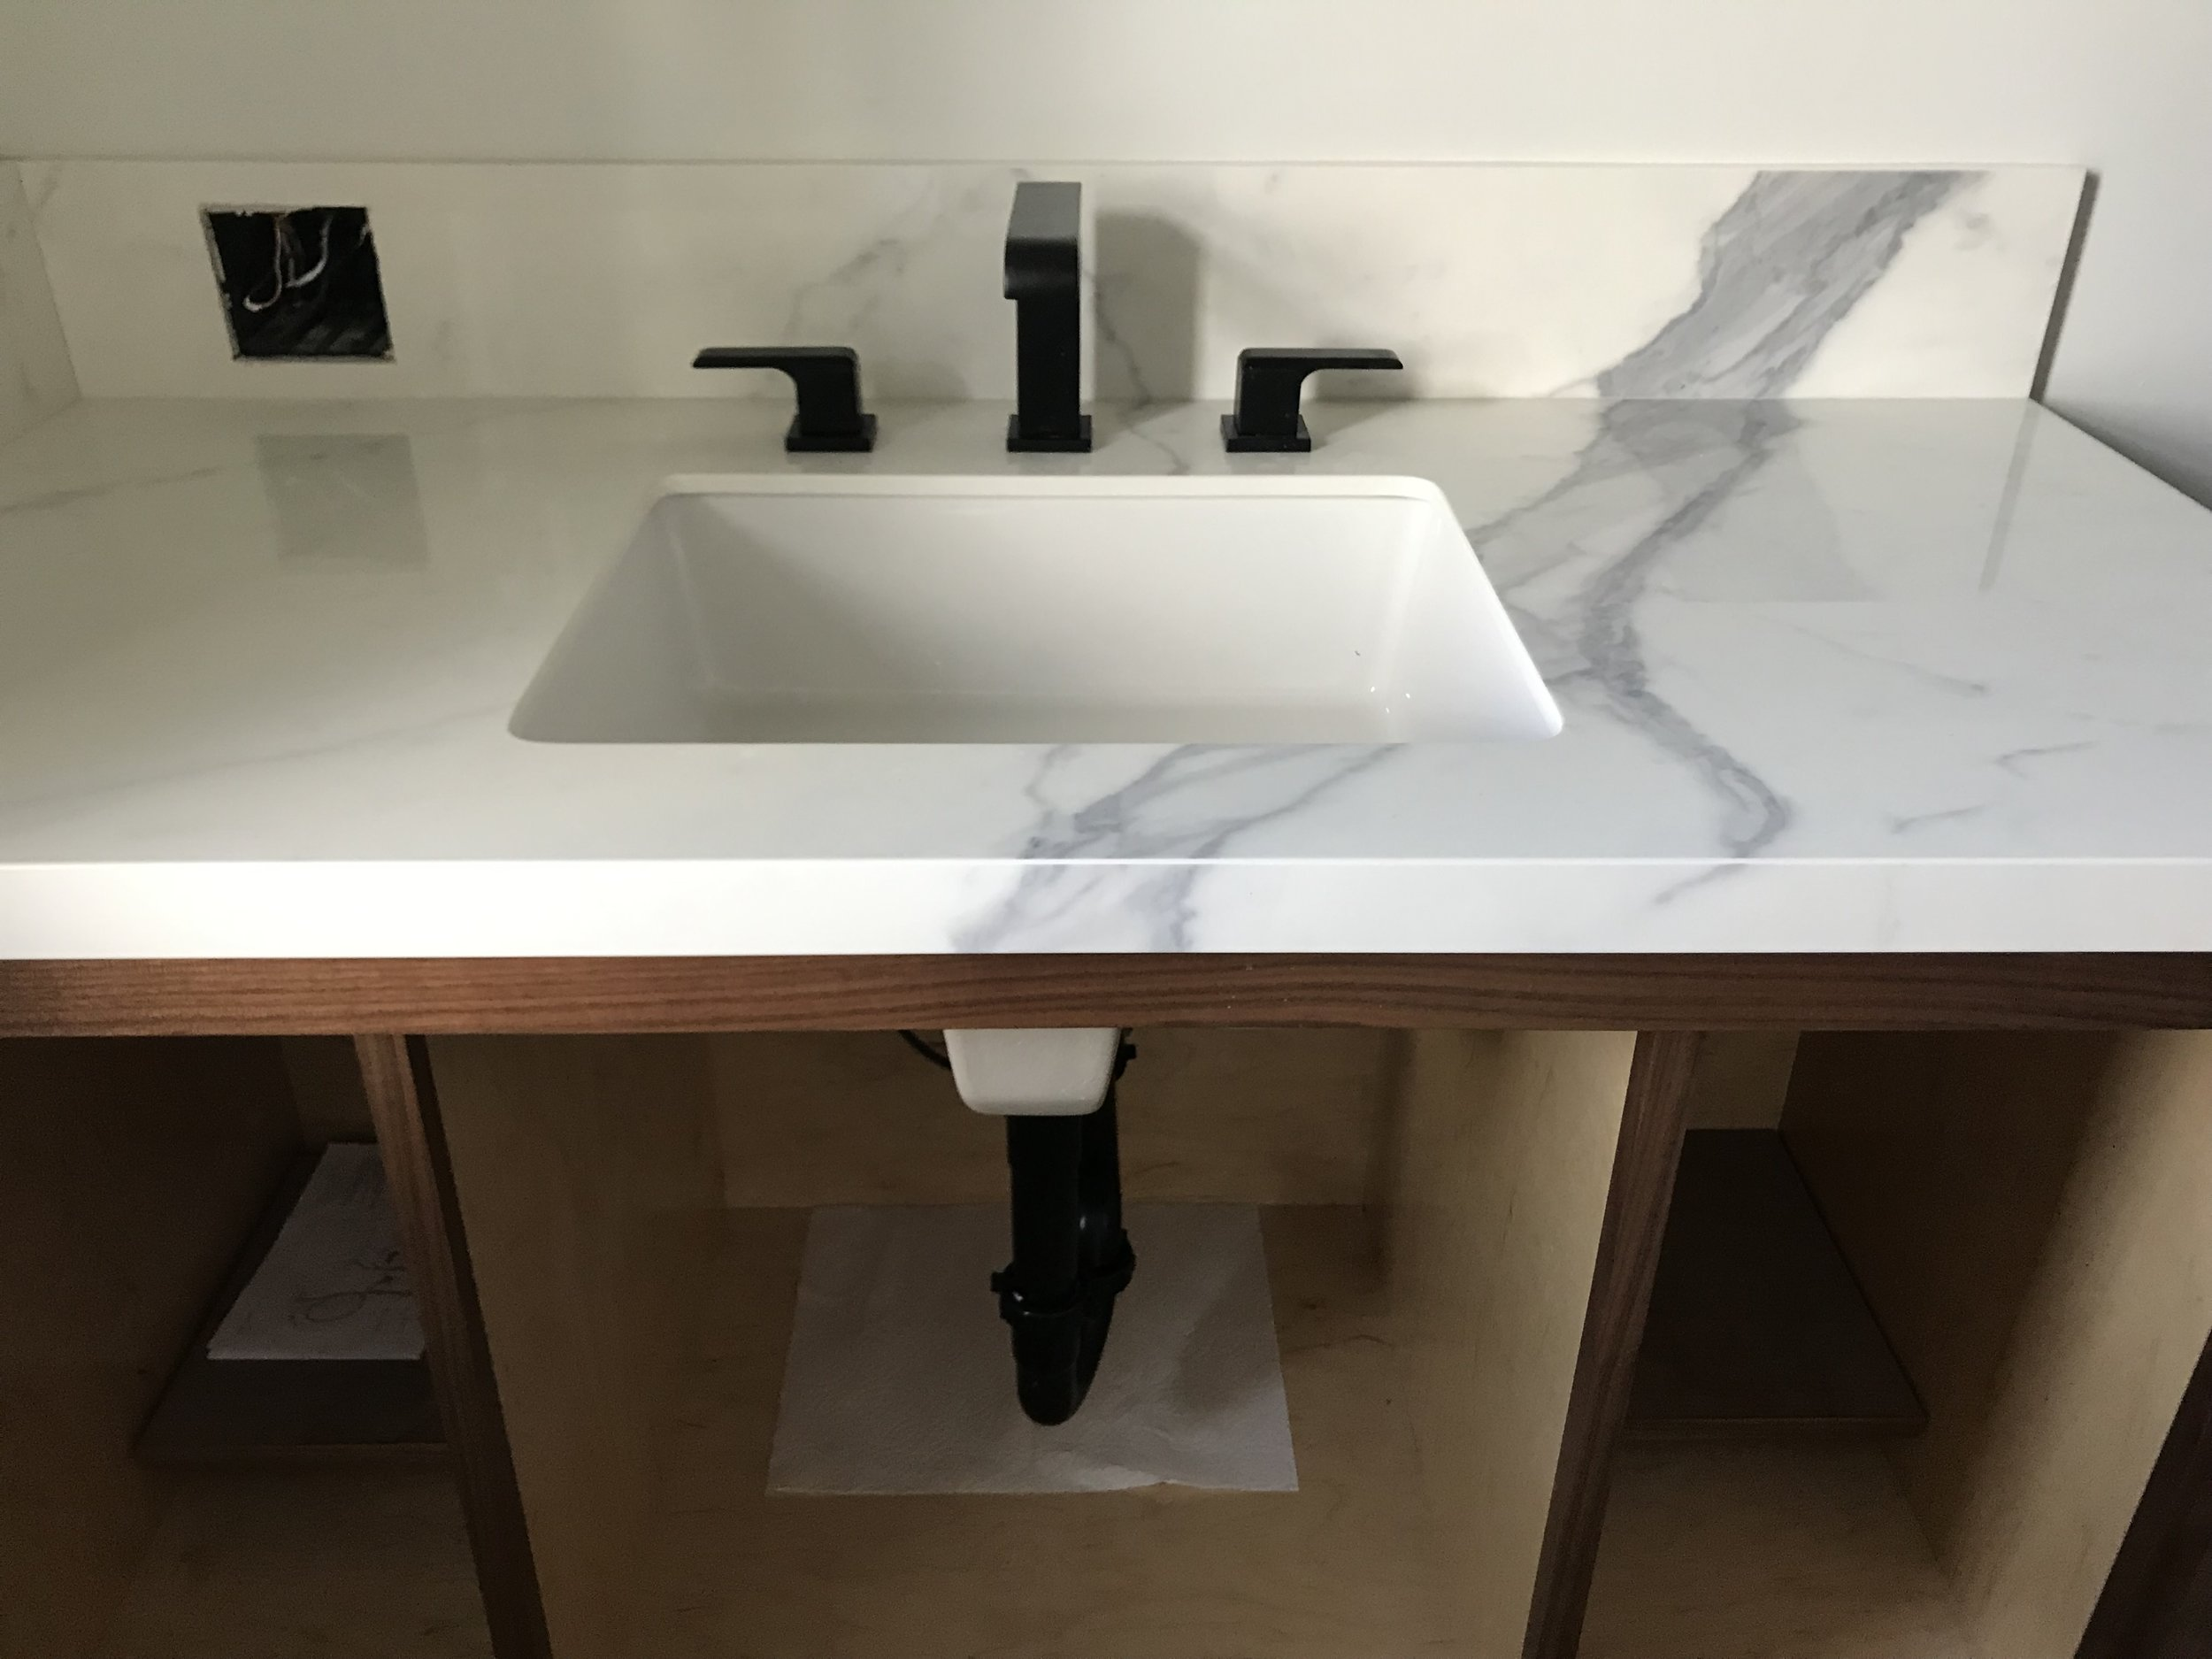 Master Bathroom  - Vanity installed